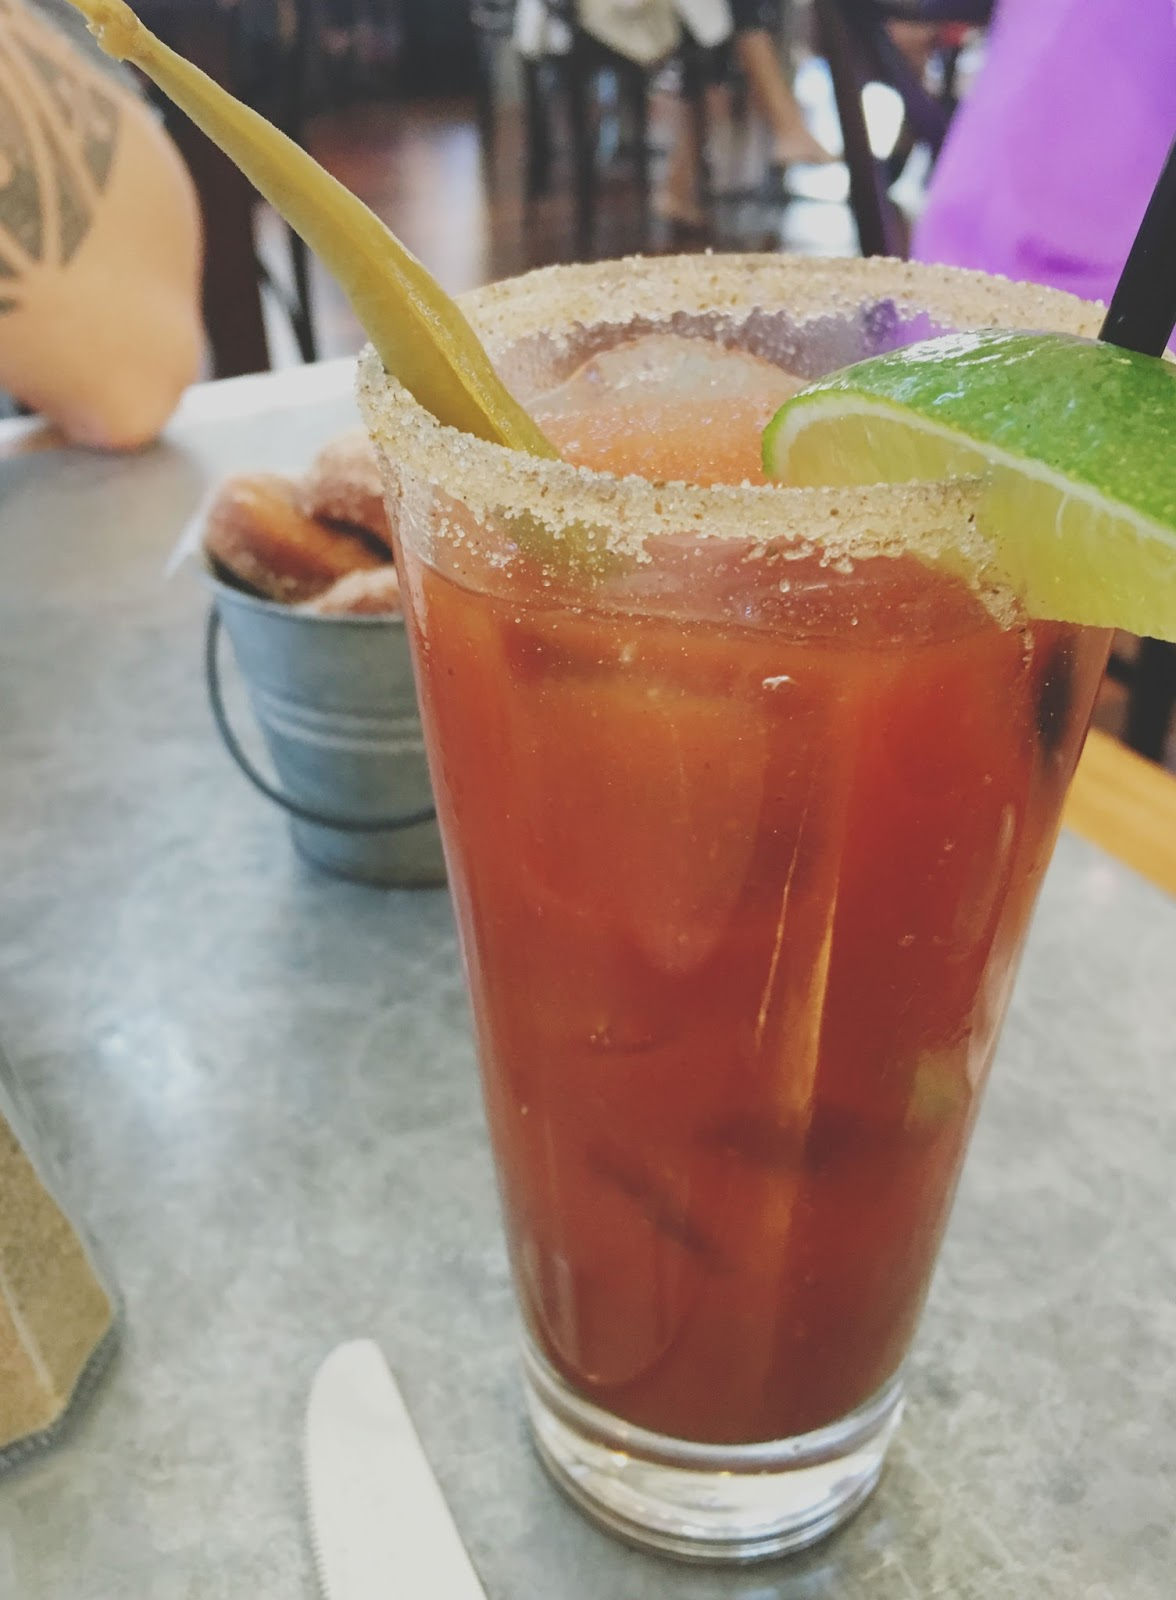 bloody mary at Boon Fly Cafe - a restaurant in Sonoma, California